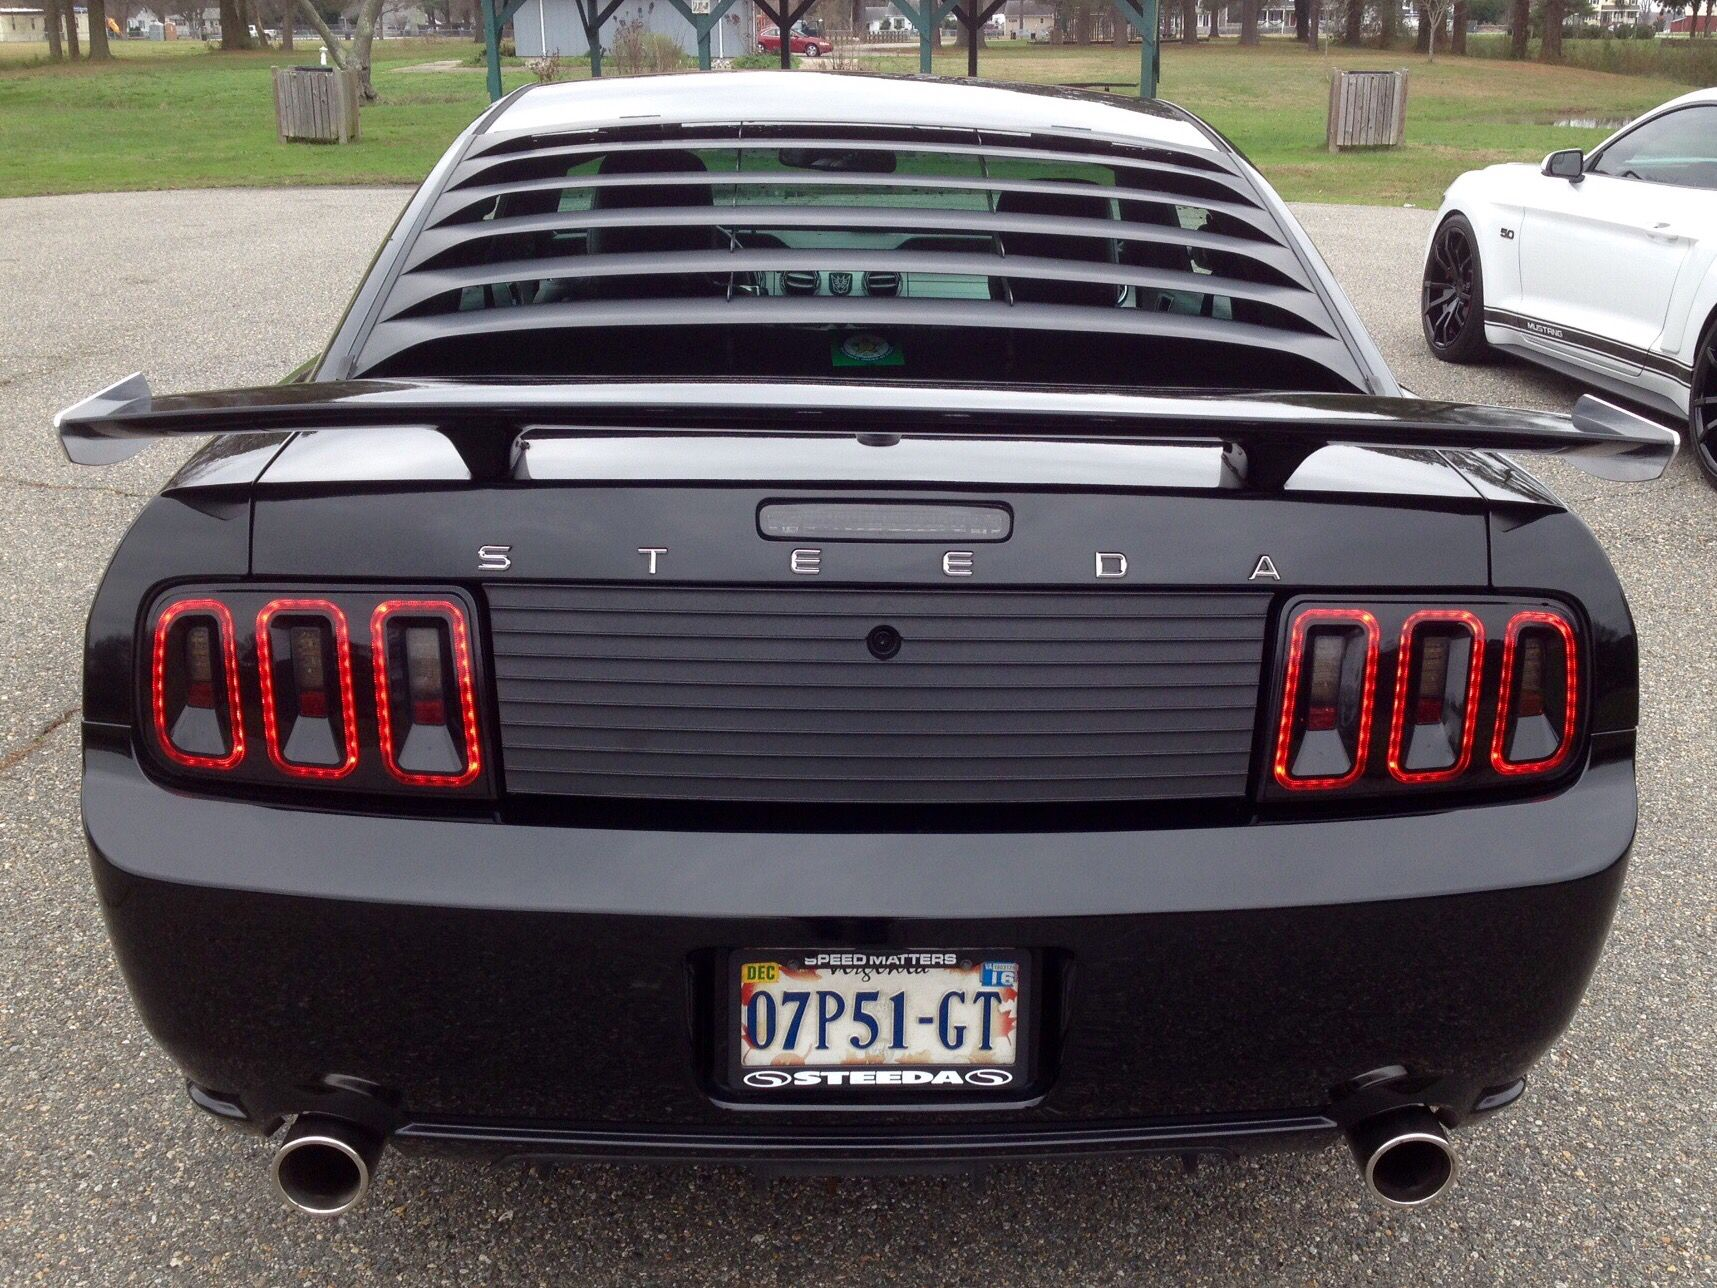 black 2007 ford steeda mustang gt with silver horse racing. Black Bedroom Furniture Sets. Home Design Ideas